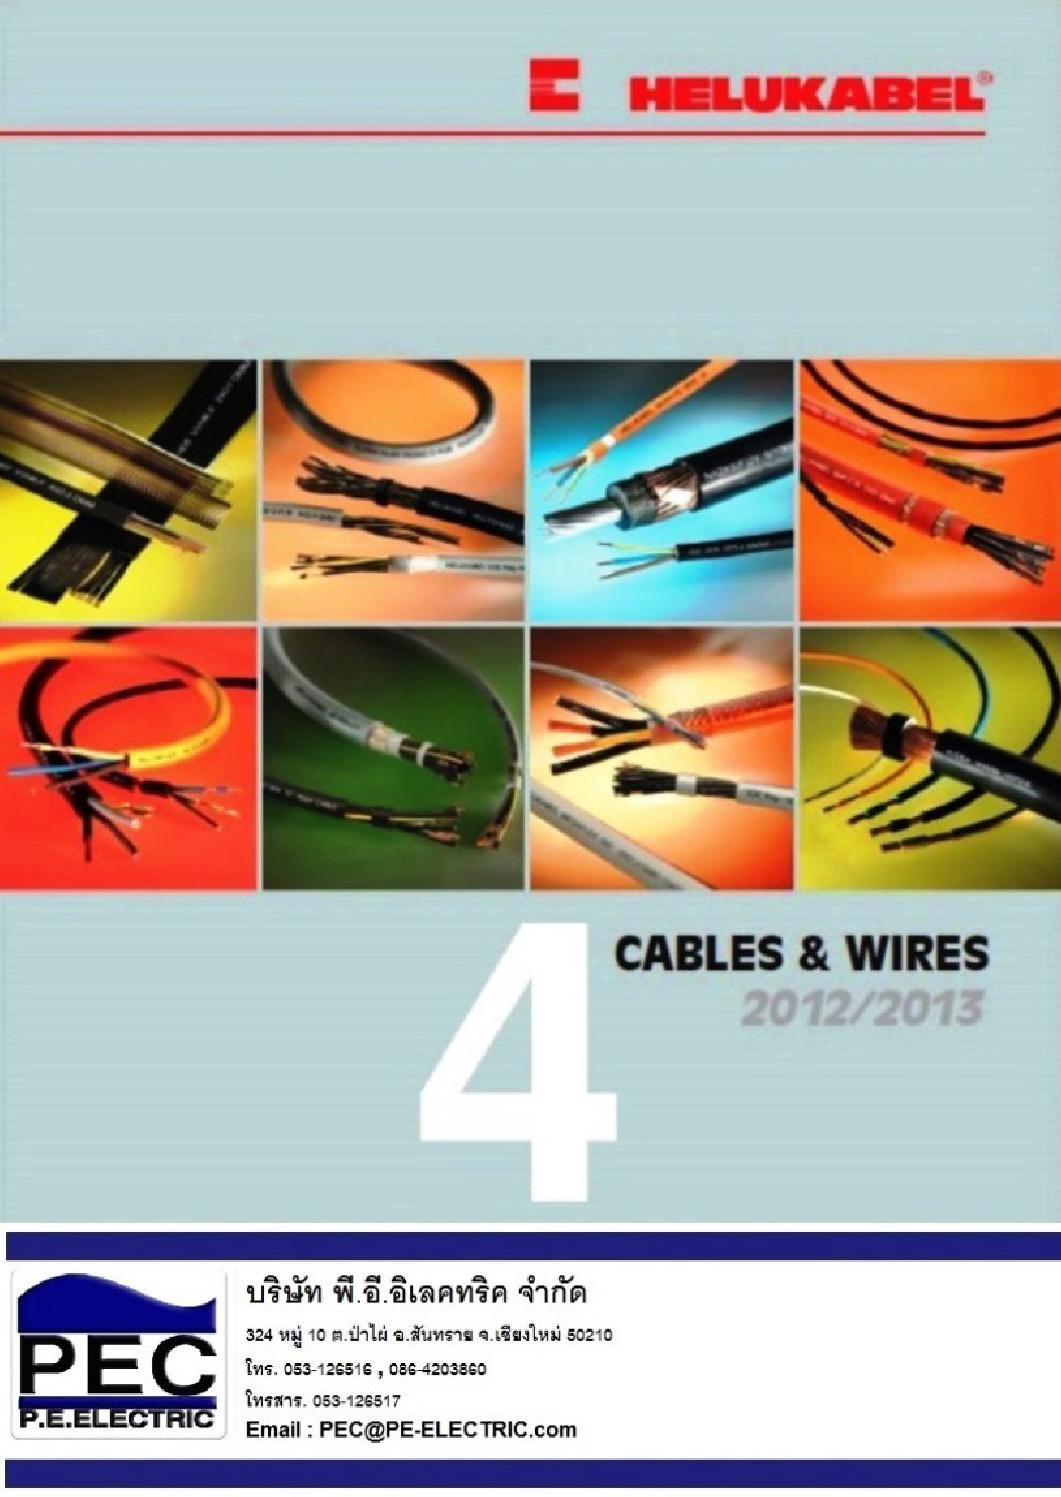 4 catalogue cables and wires en by PEC - issuu